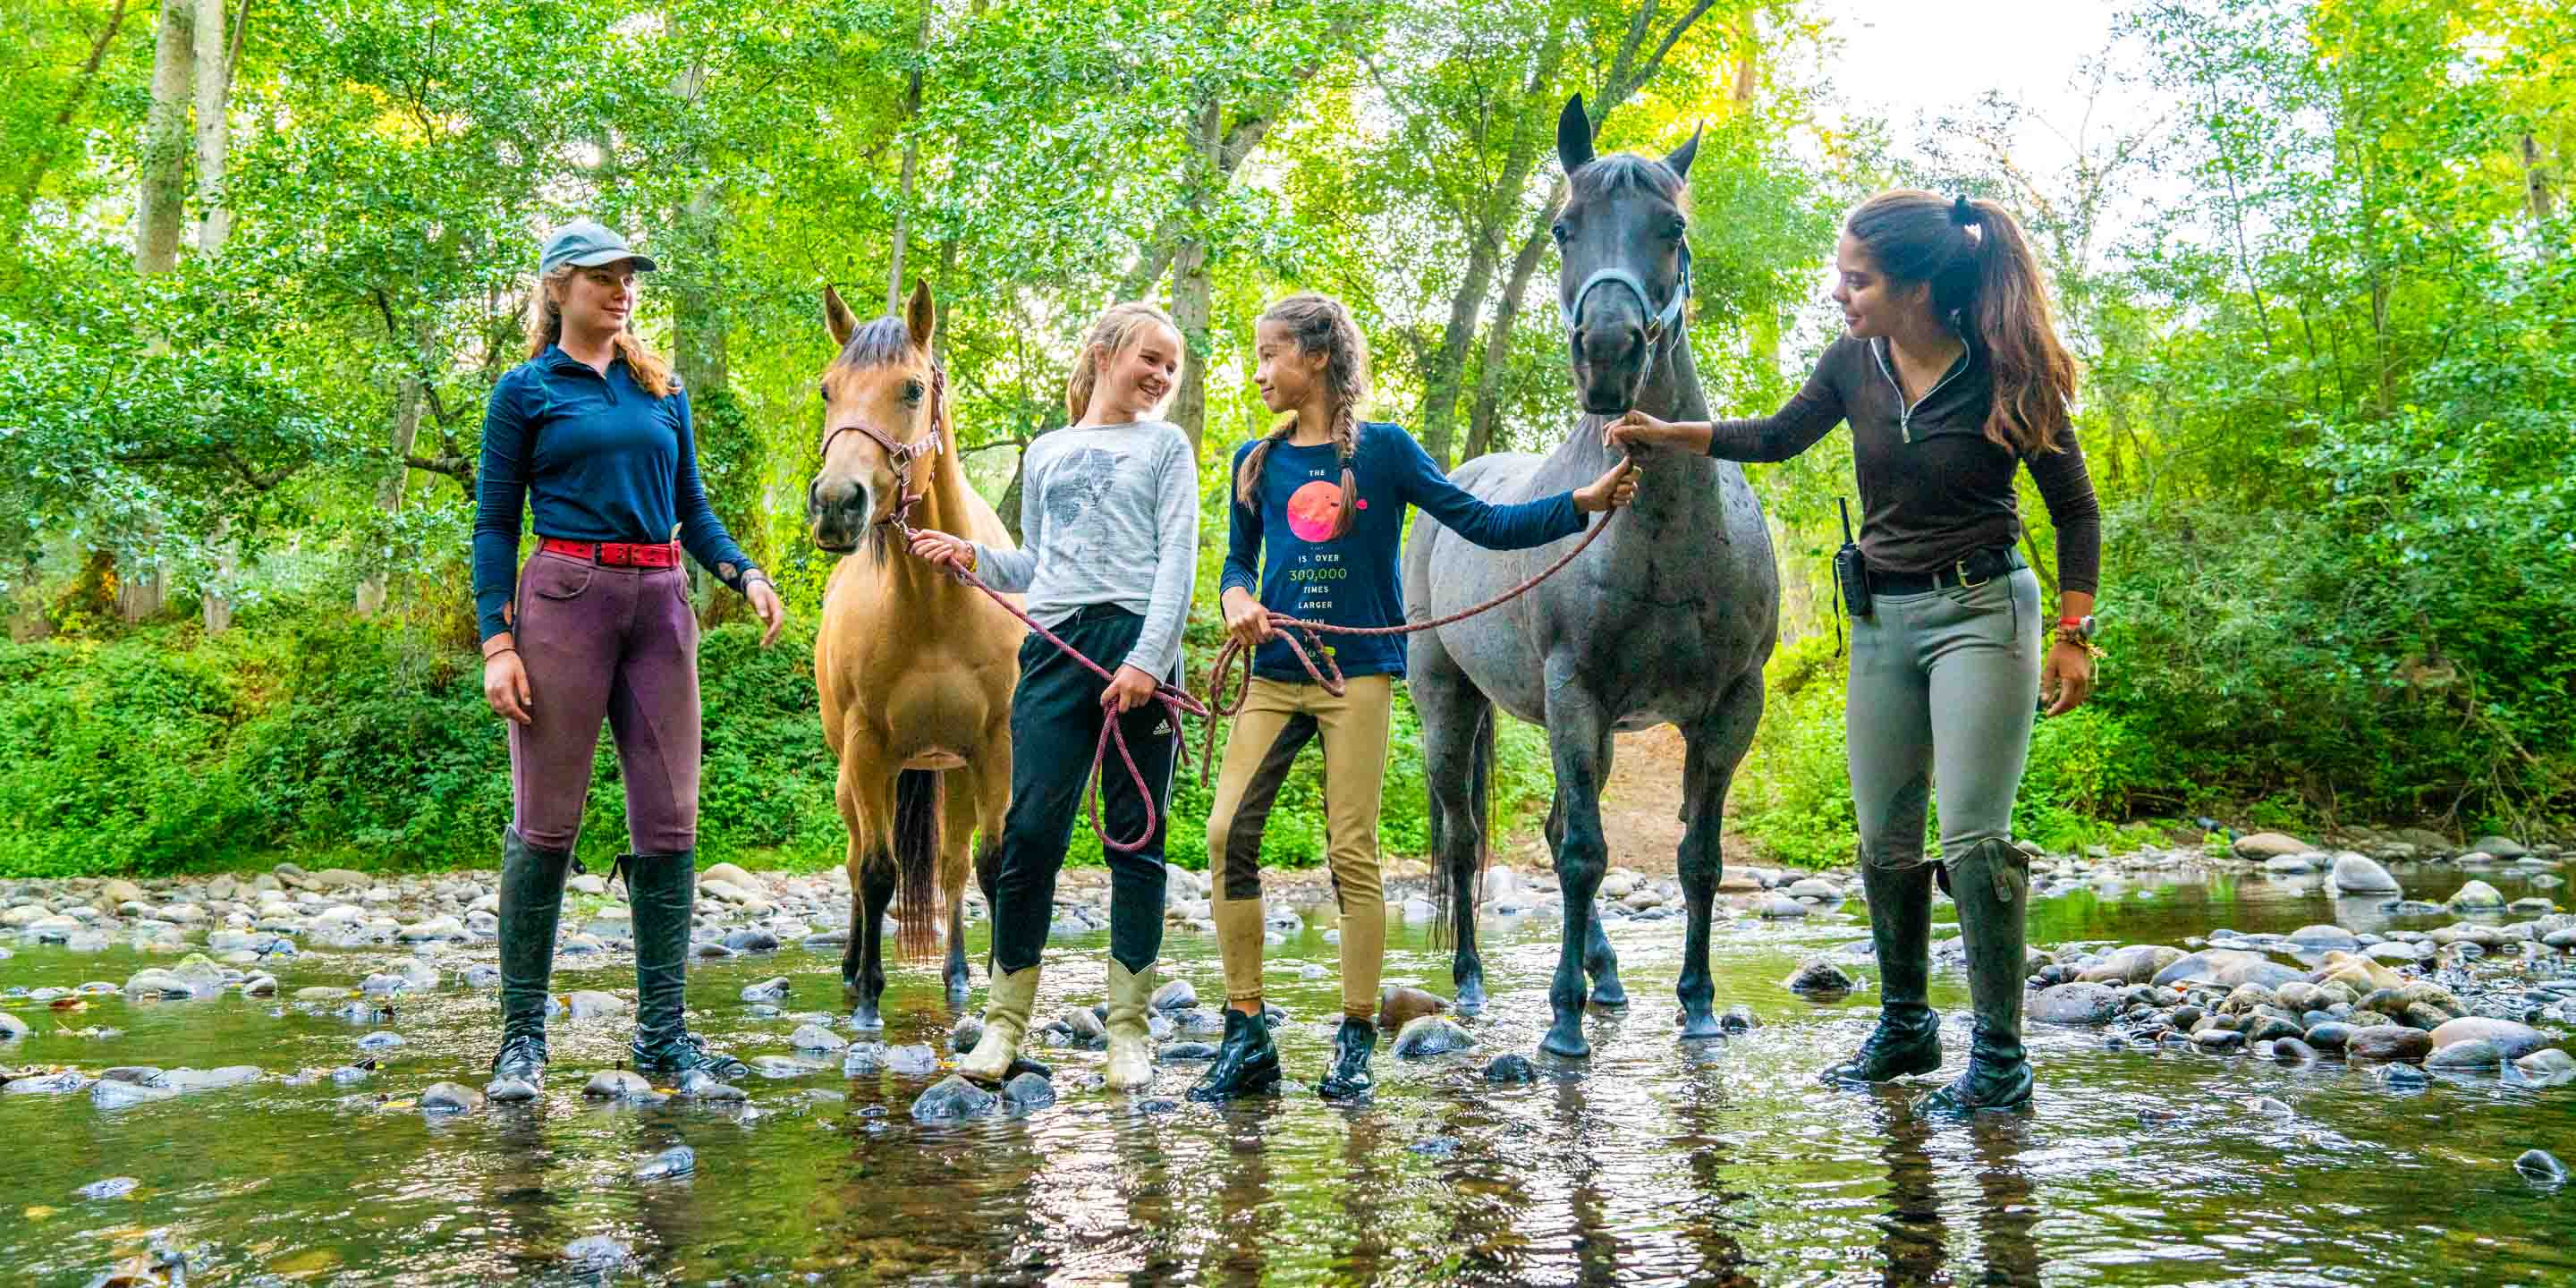 Campers walk horses in shallow river